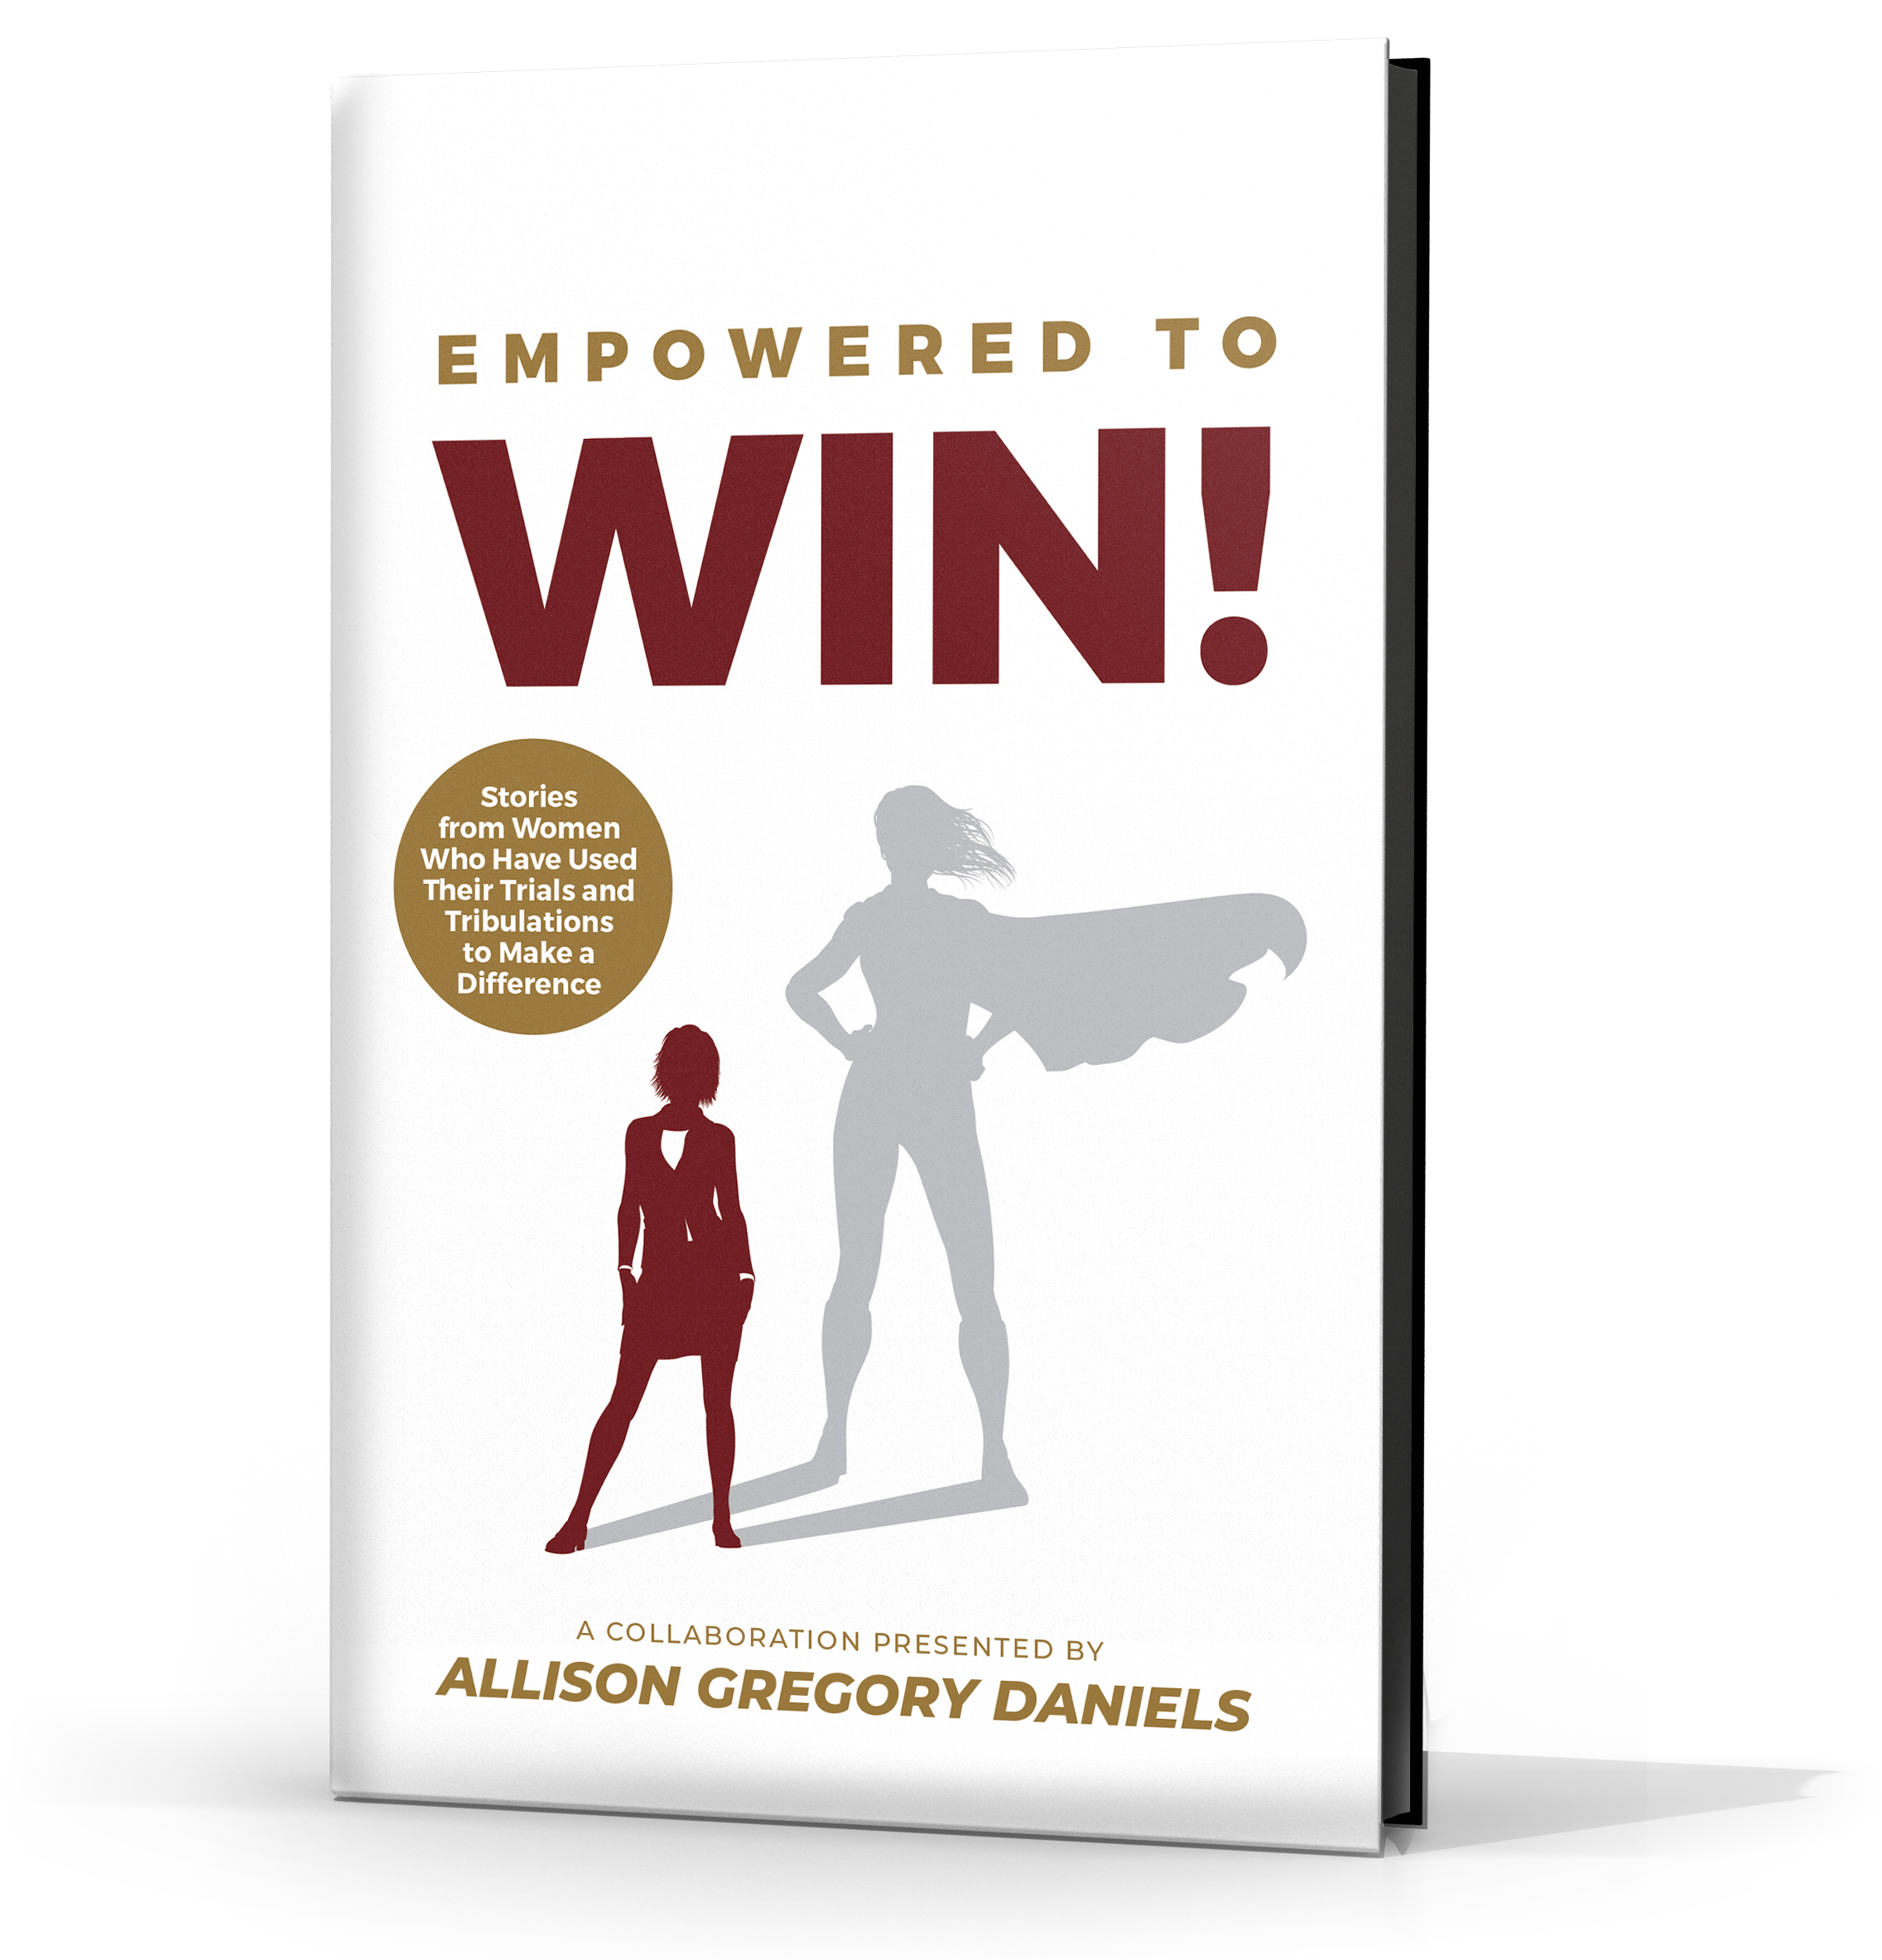 Life Coach and Bestselling Author Releases Inspirational Anthology Promoting Winning Against All Odds